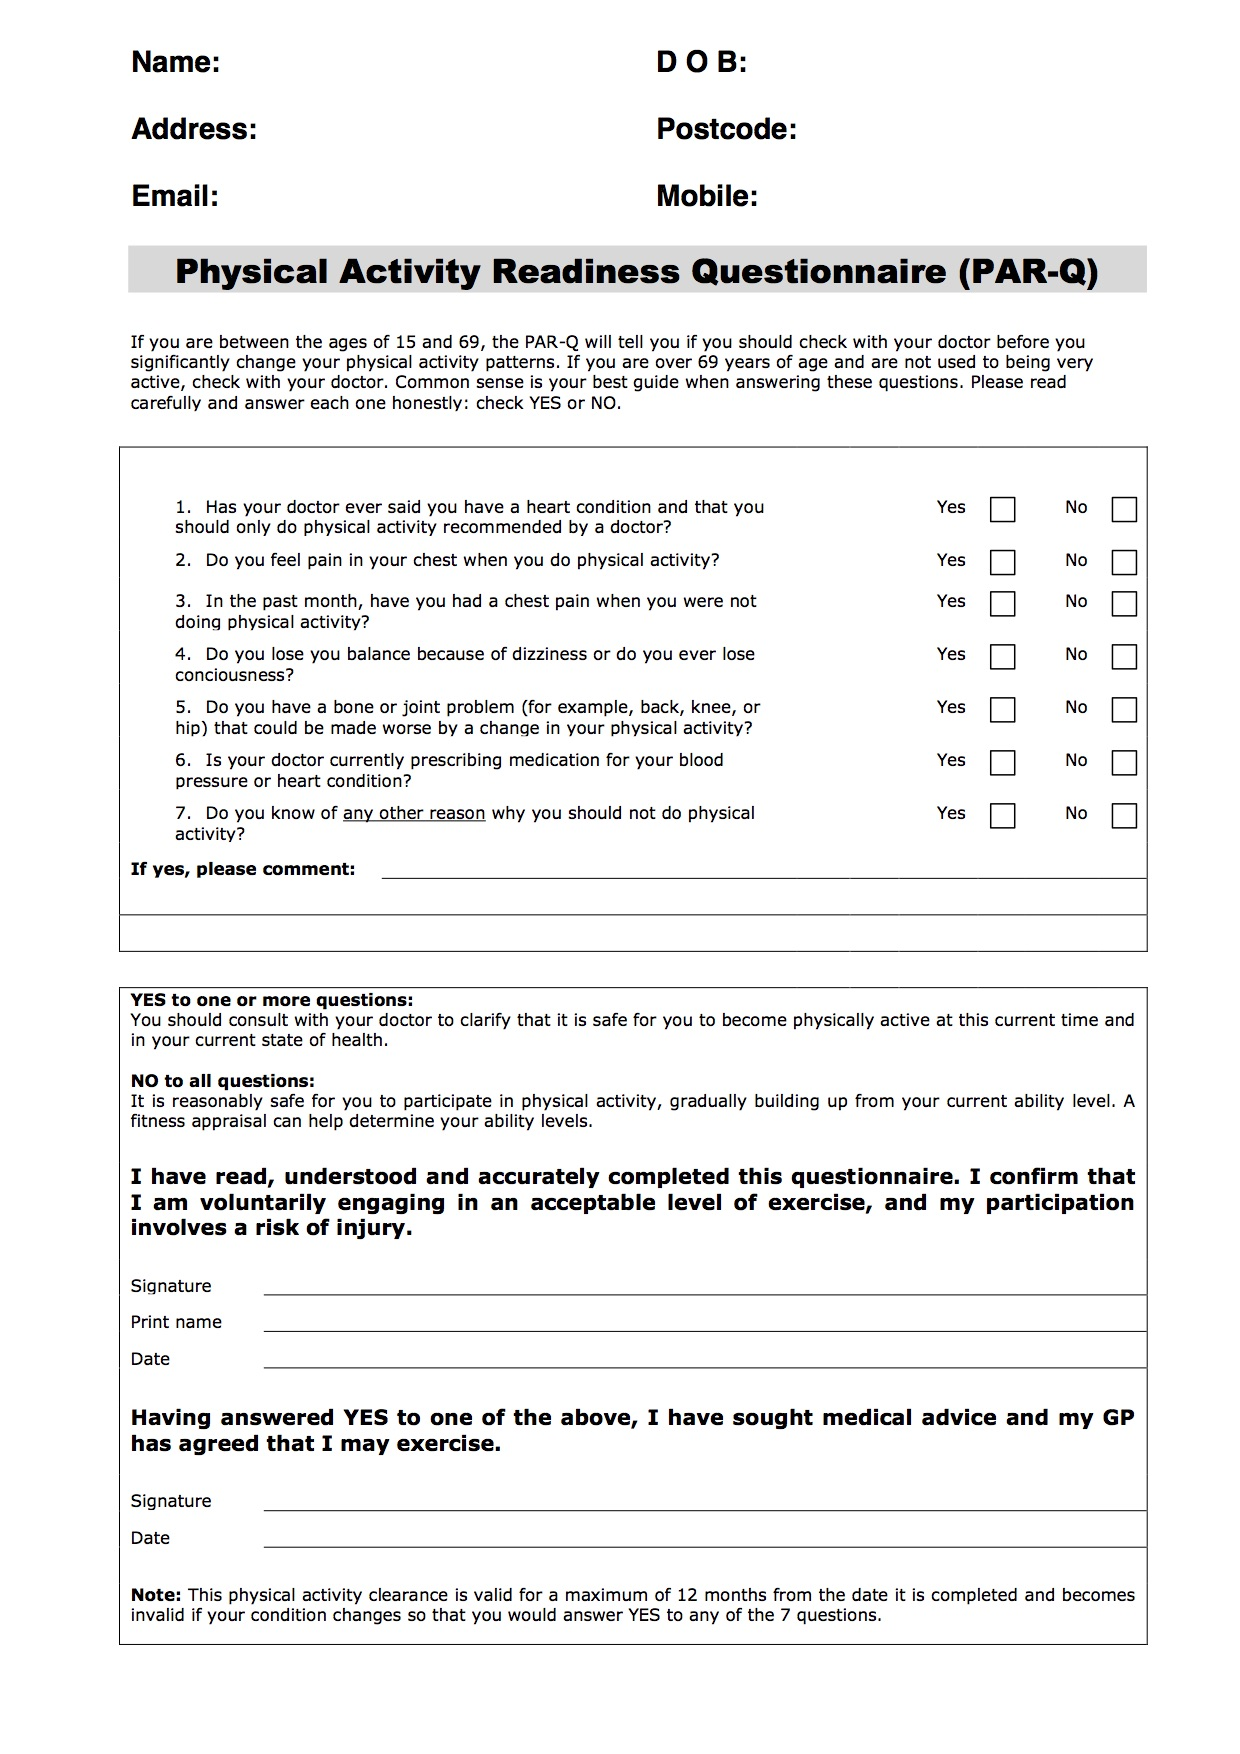 Converting a PDF form to an online form using the Form Builder